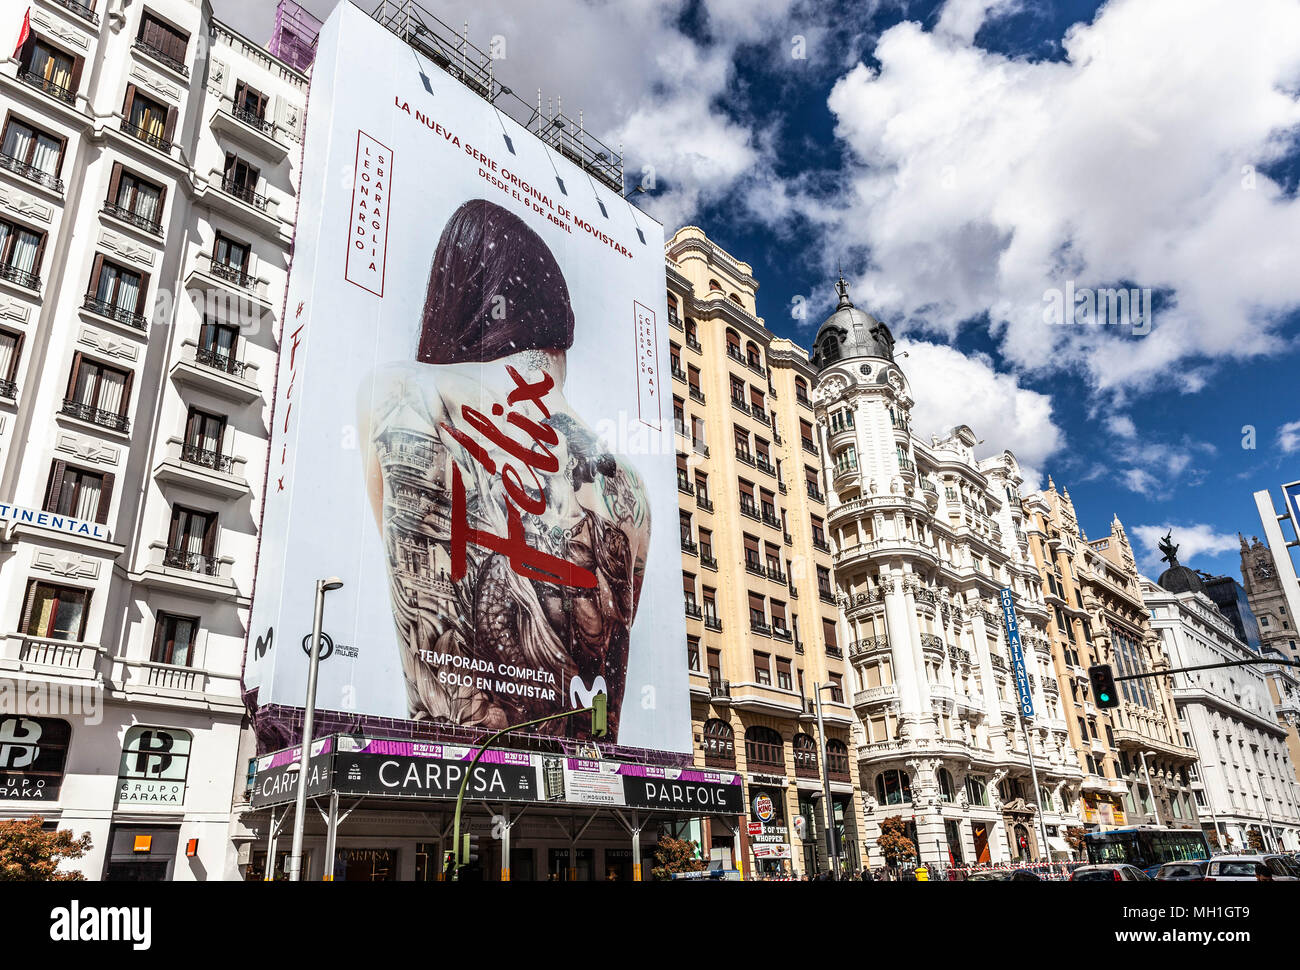 Giant vertical billboard covering building scaffolding, Gran Via, Madrid, Spain. - Stock Image